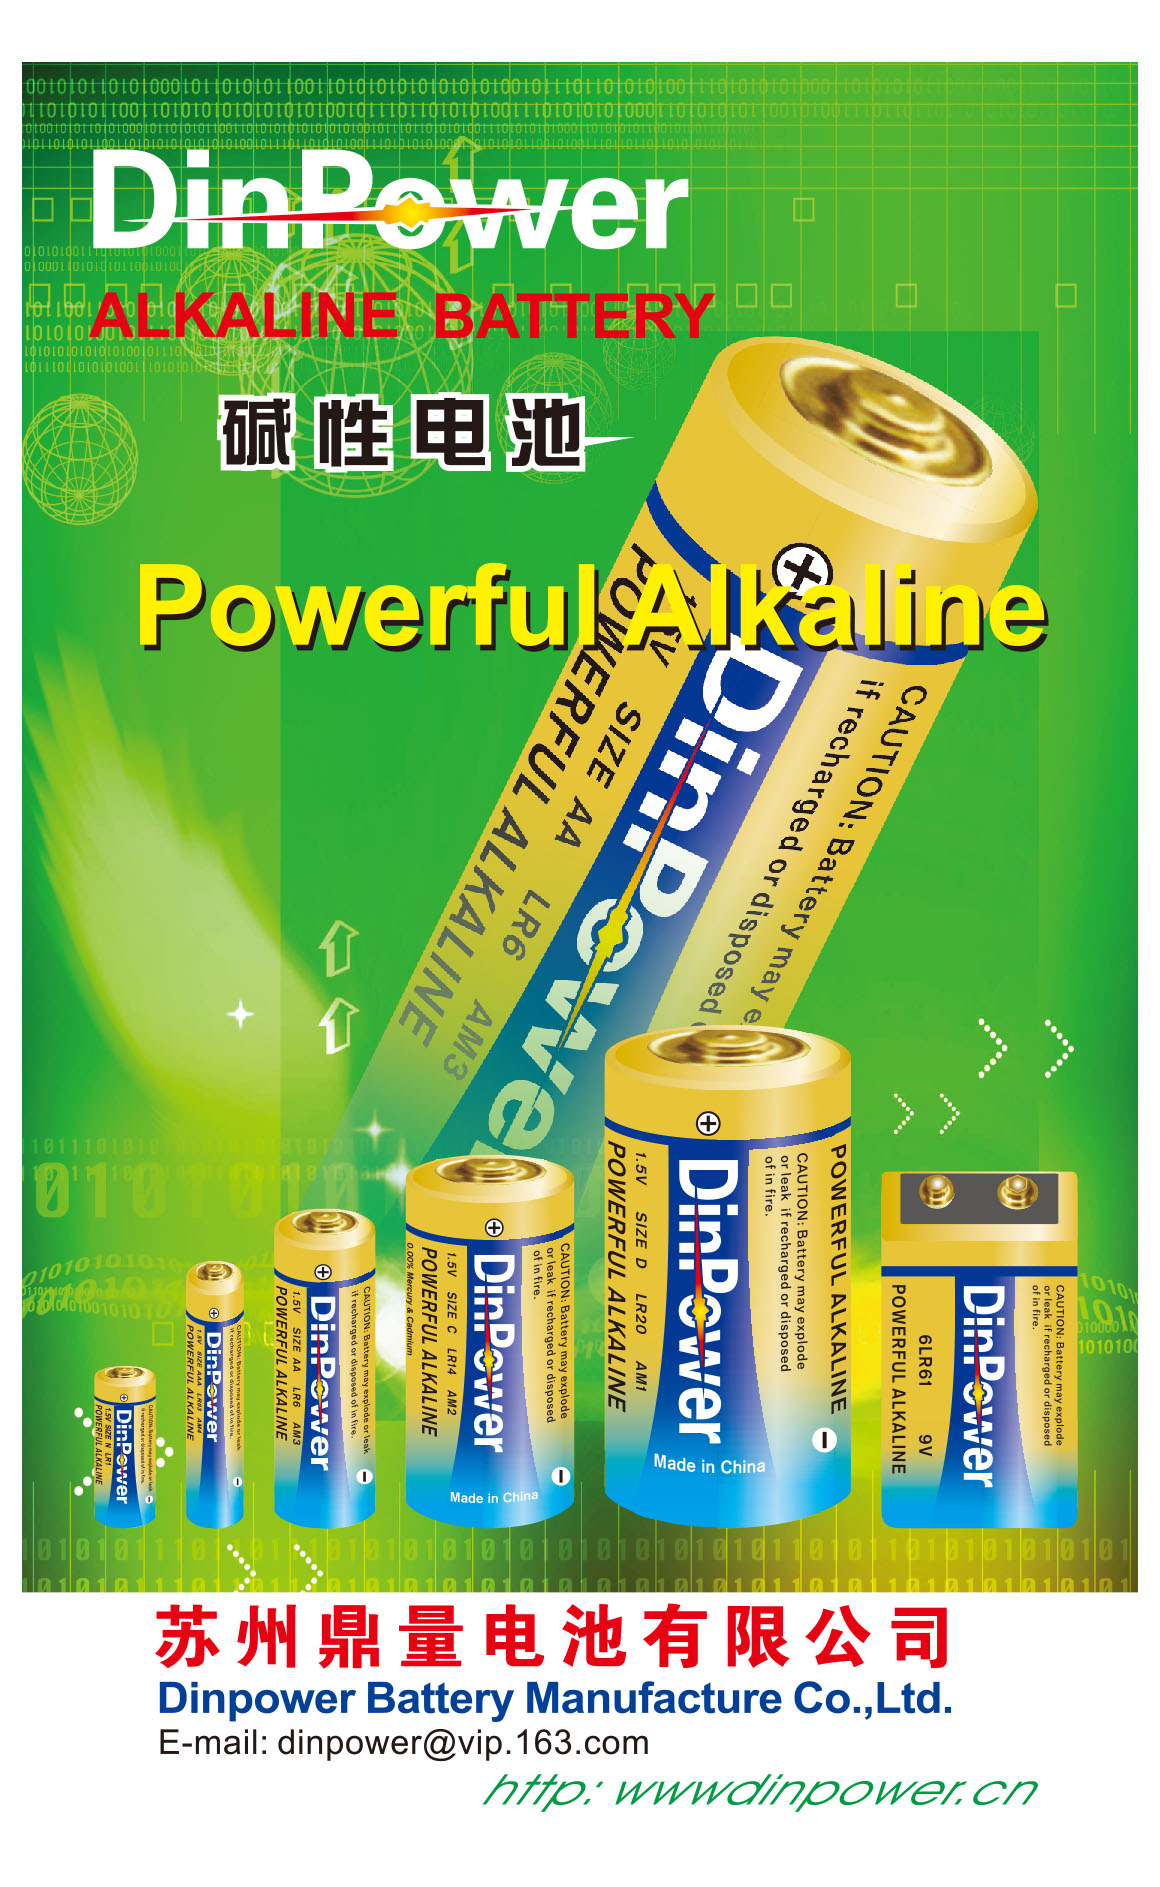 DinPower Battery Manufacture Co.,LTD